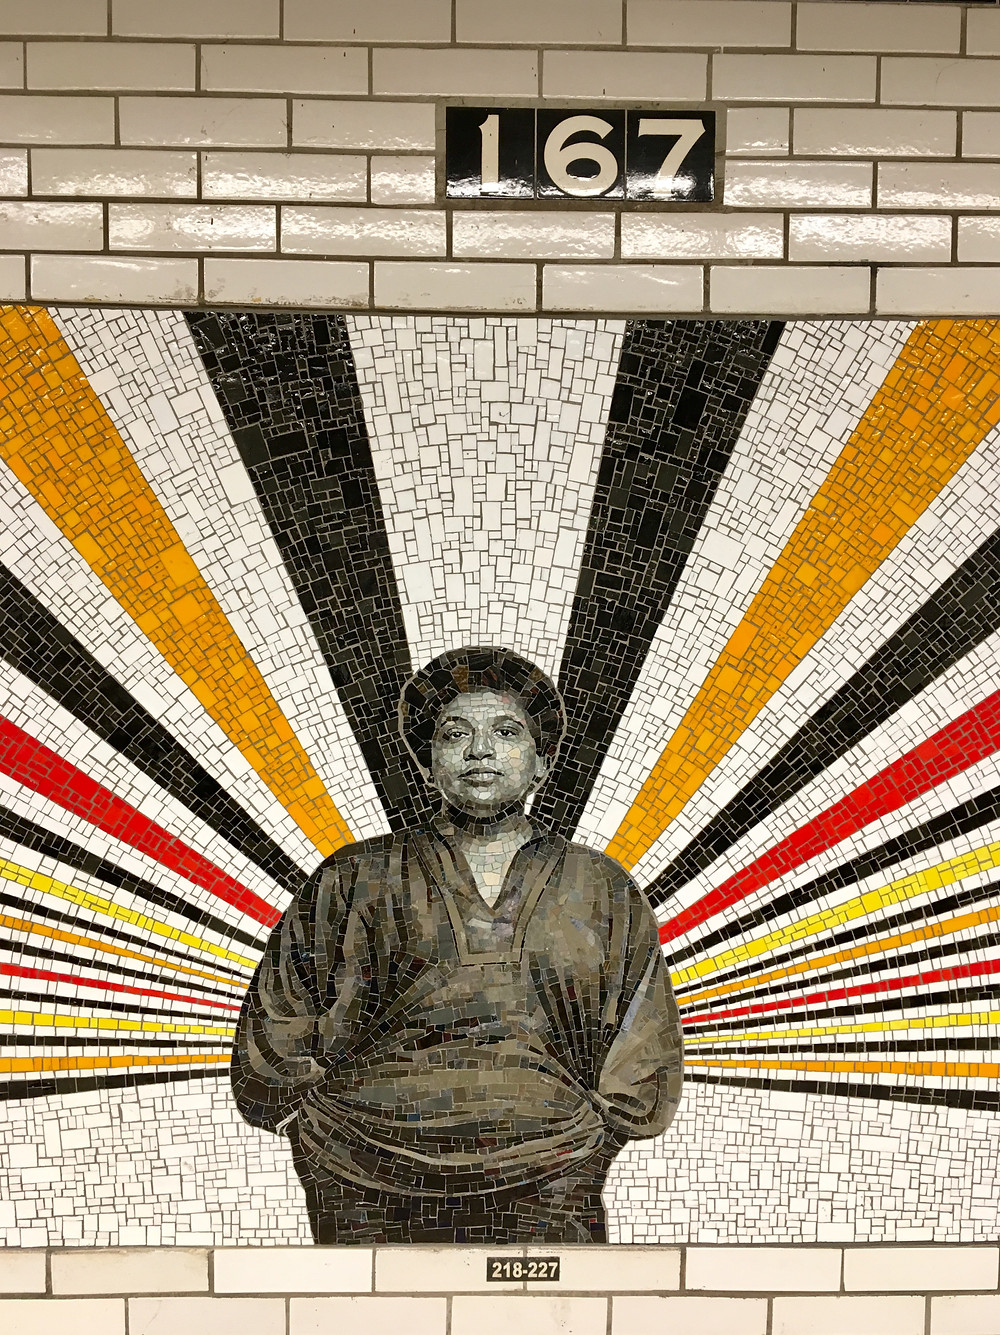 Rico Gatson's mosaic portrait of Audre Lorde in the 167 St subway station in the Bronx